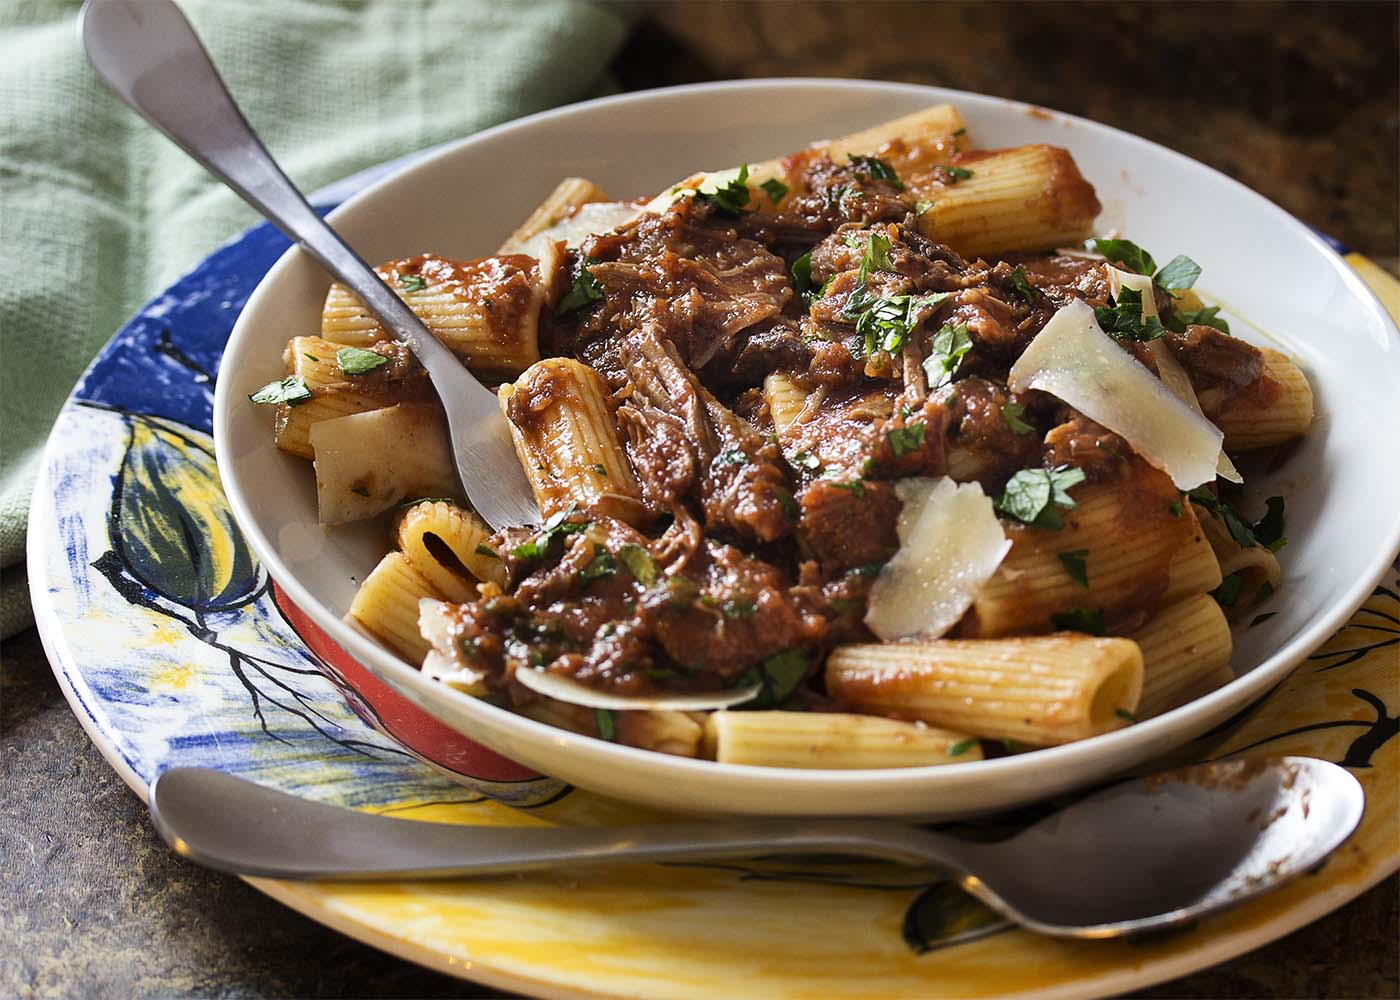 Close-up of a fork digging into a white bowl of short rib ragu and rigatoni.